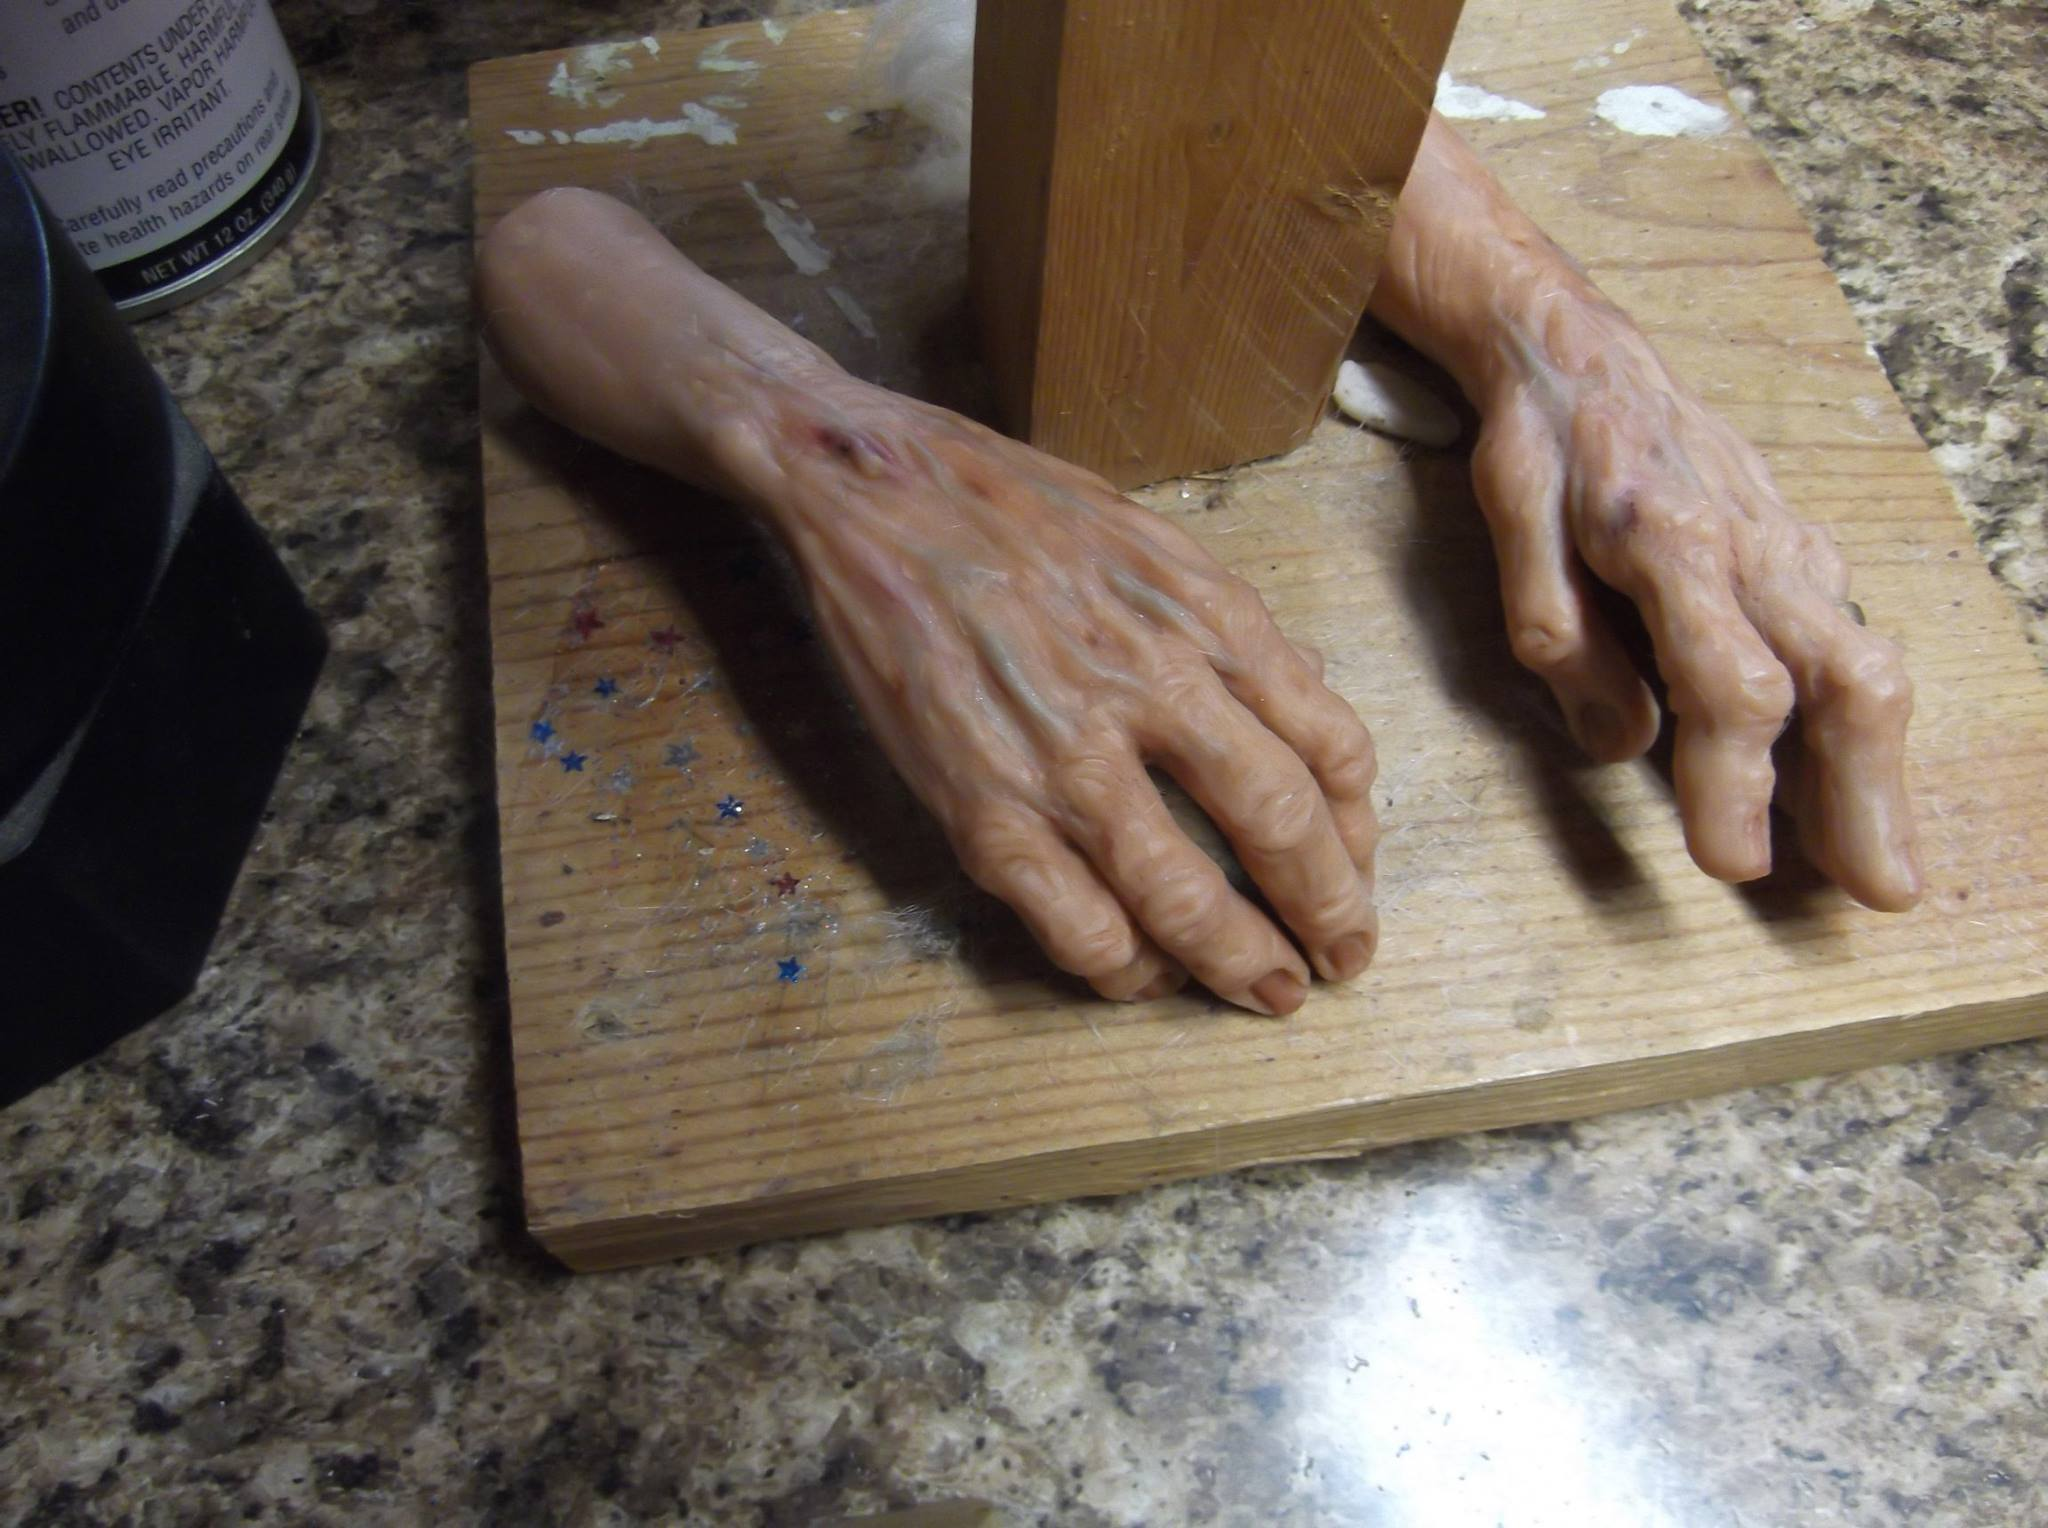 Hands in progress...